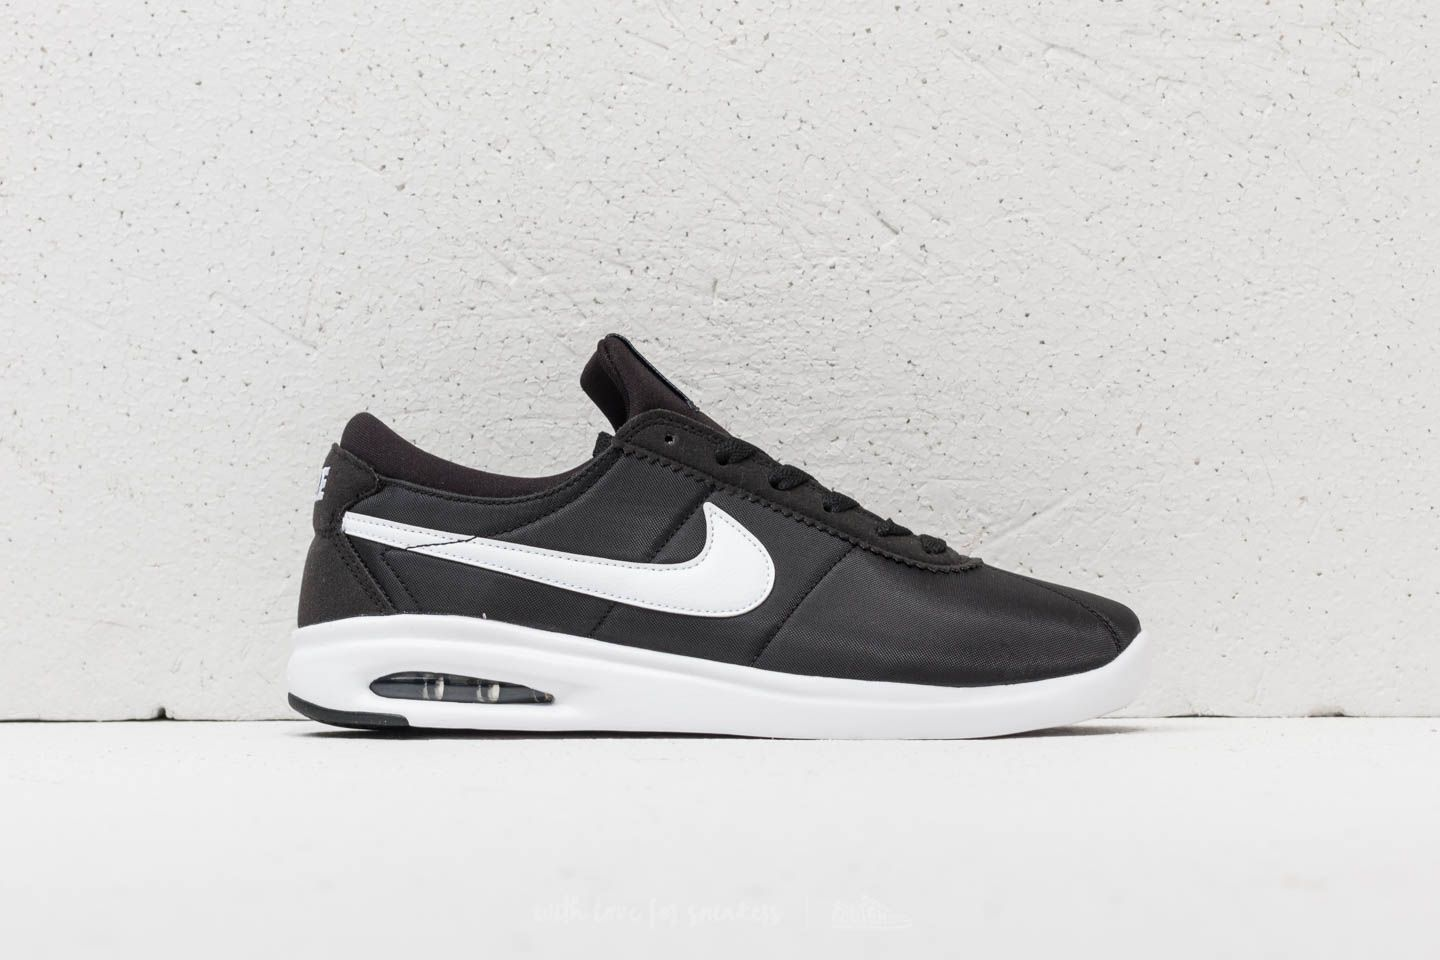 reputable site 519d9 c30e3 Nike SB Air Max Bruin Vapor TXT Black White-White-Black at a